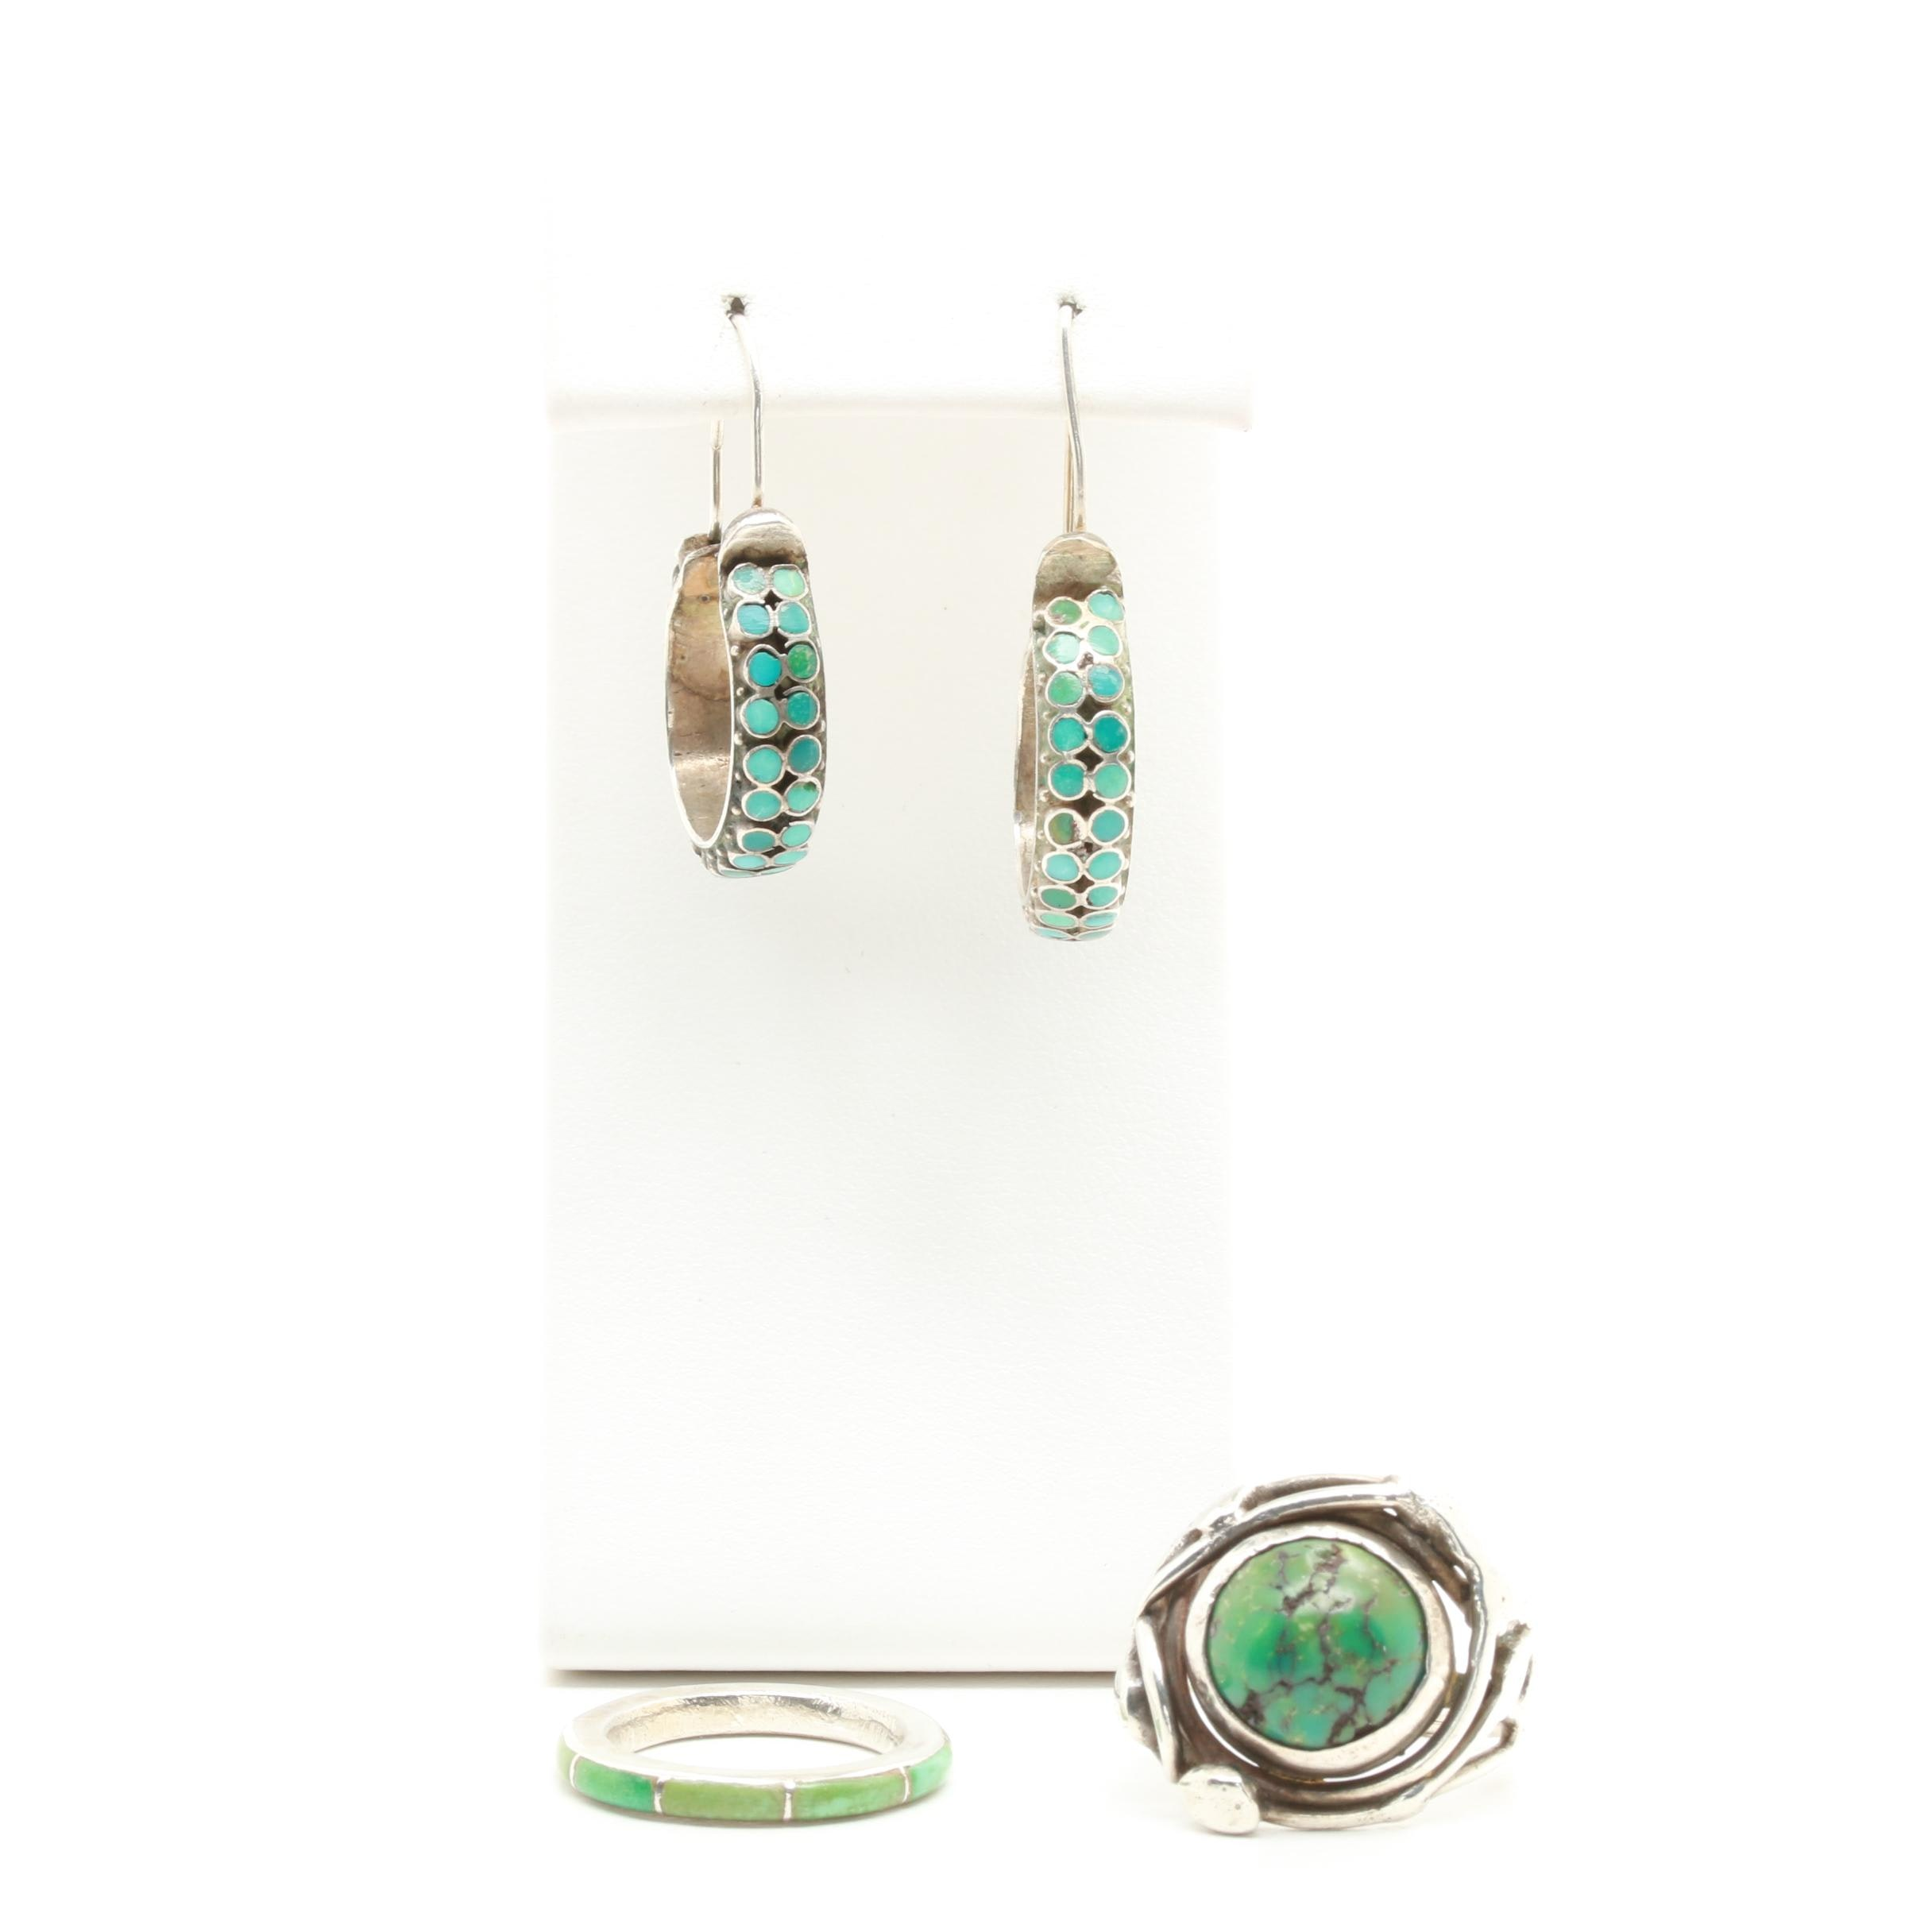 Sterling Silver Turquoise and Stabilized Turquoise Rings and Earrings